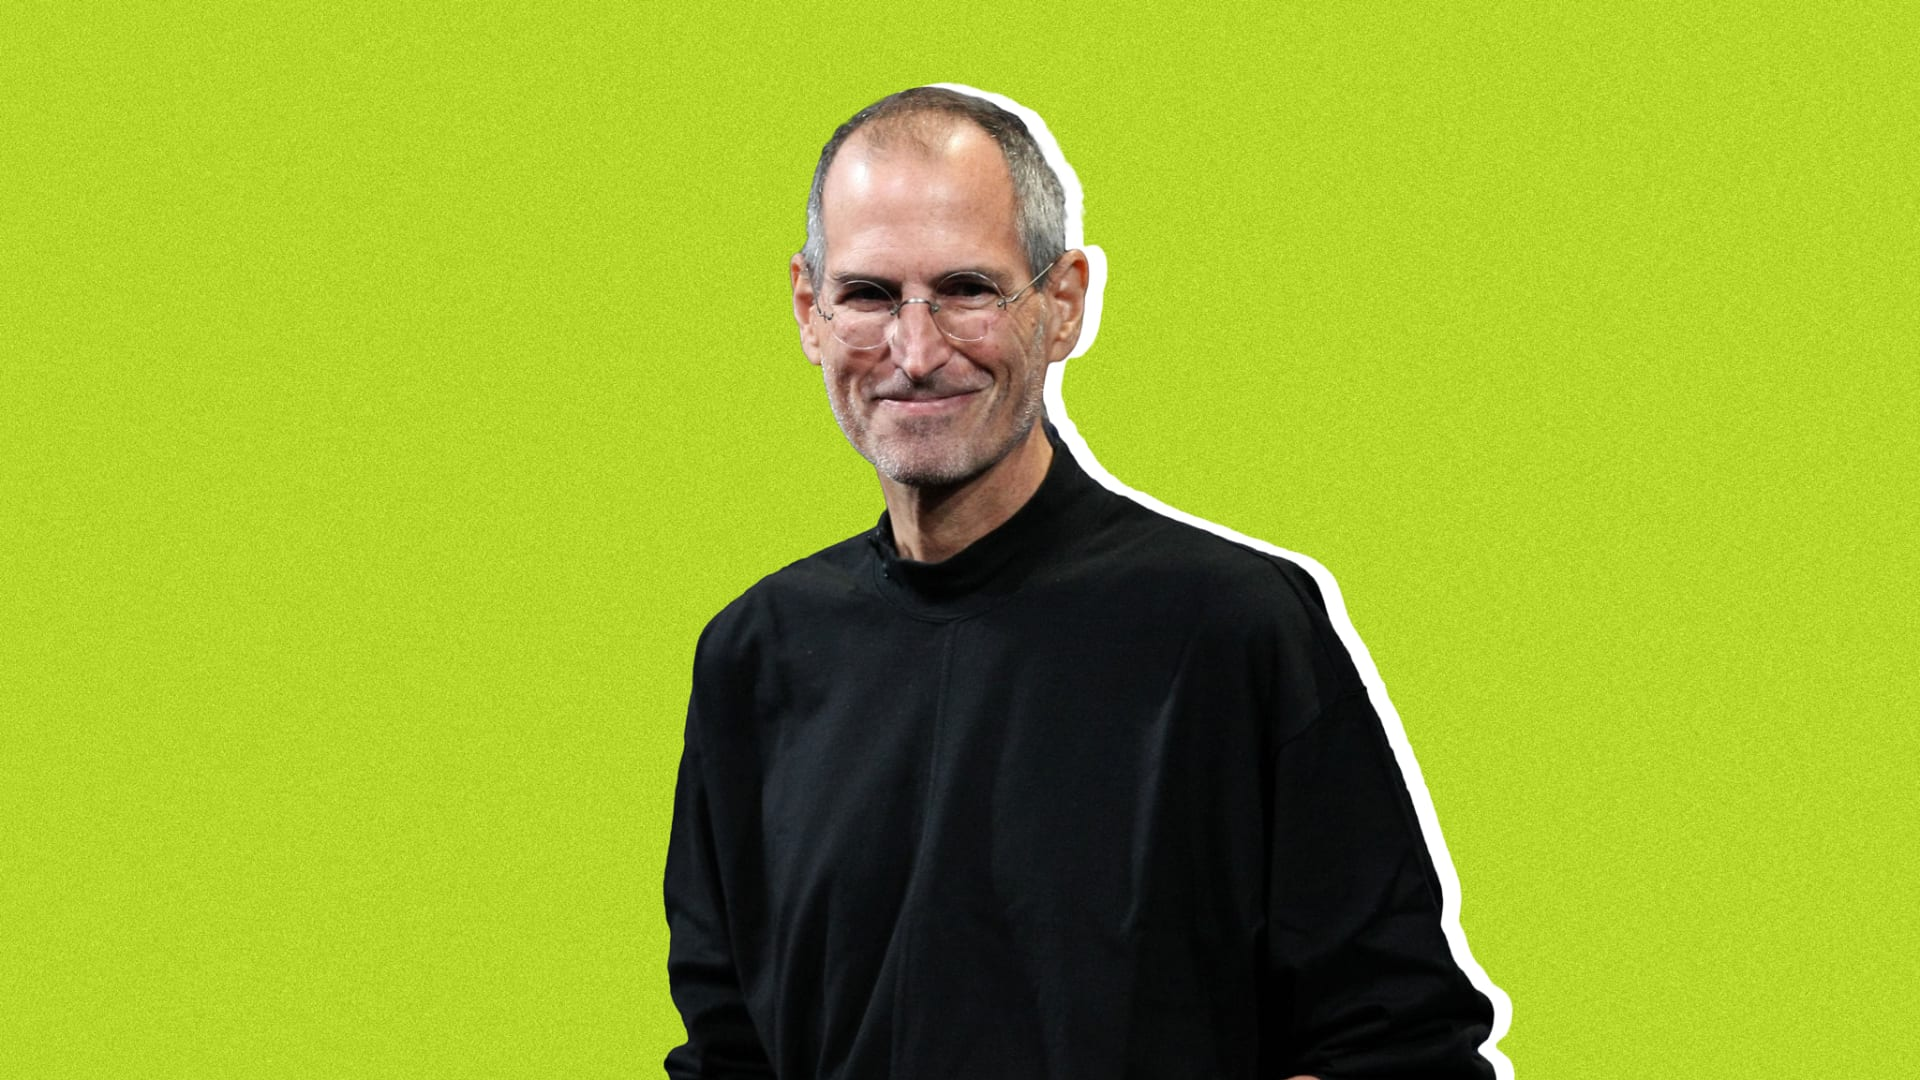 Steve Jobs Believed 1 Career Choice Separates the Doers from the Dreamers (and Leads to Success)